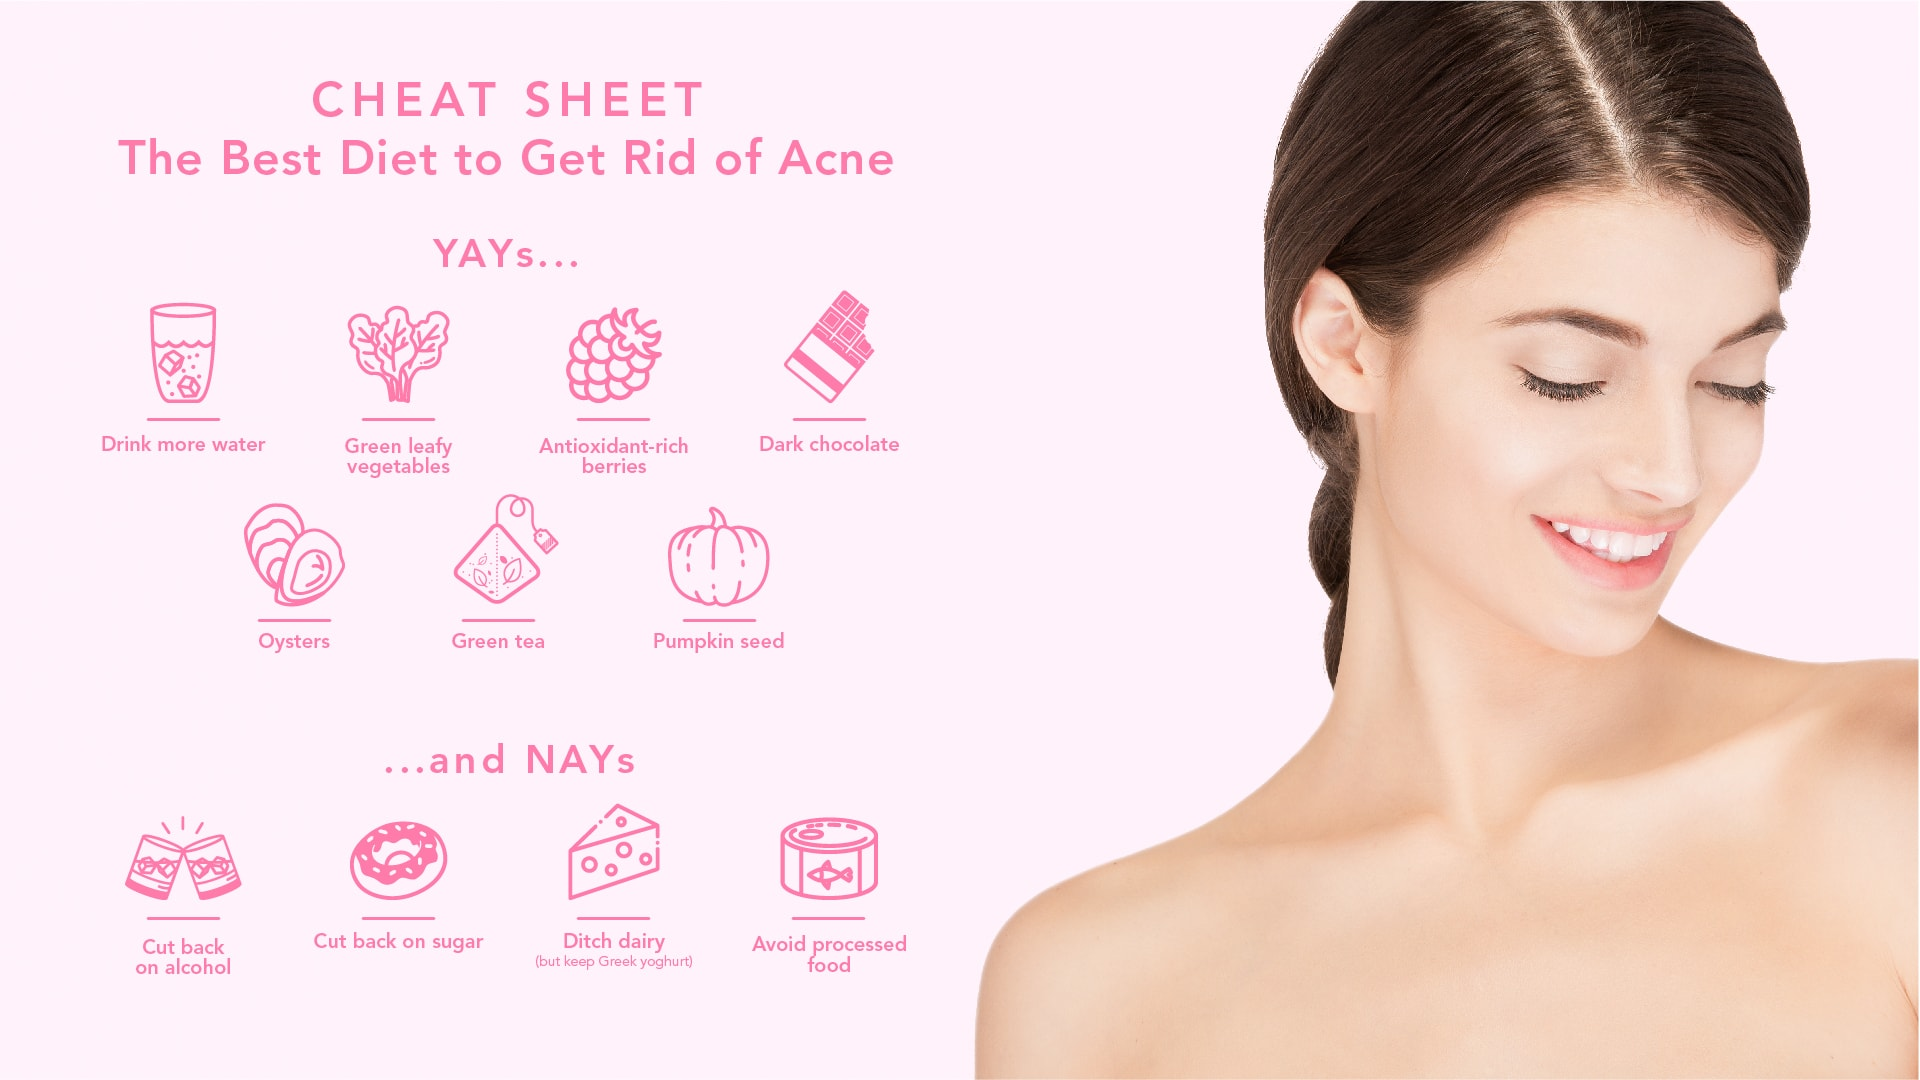 Acne Diet - Cheat Sheet